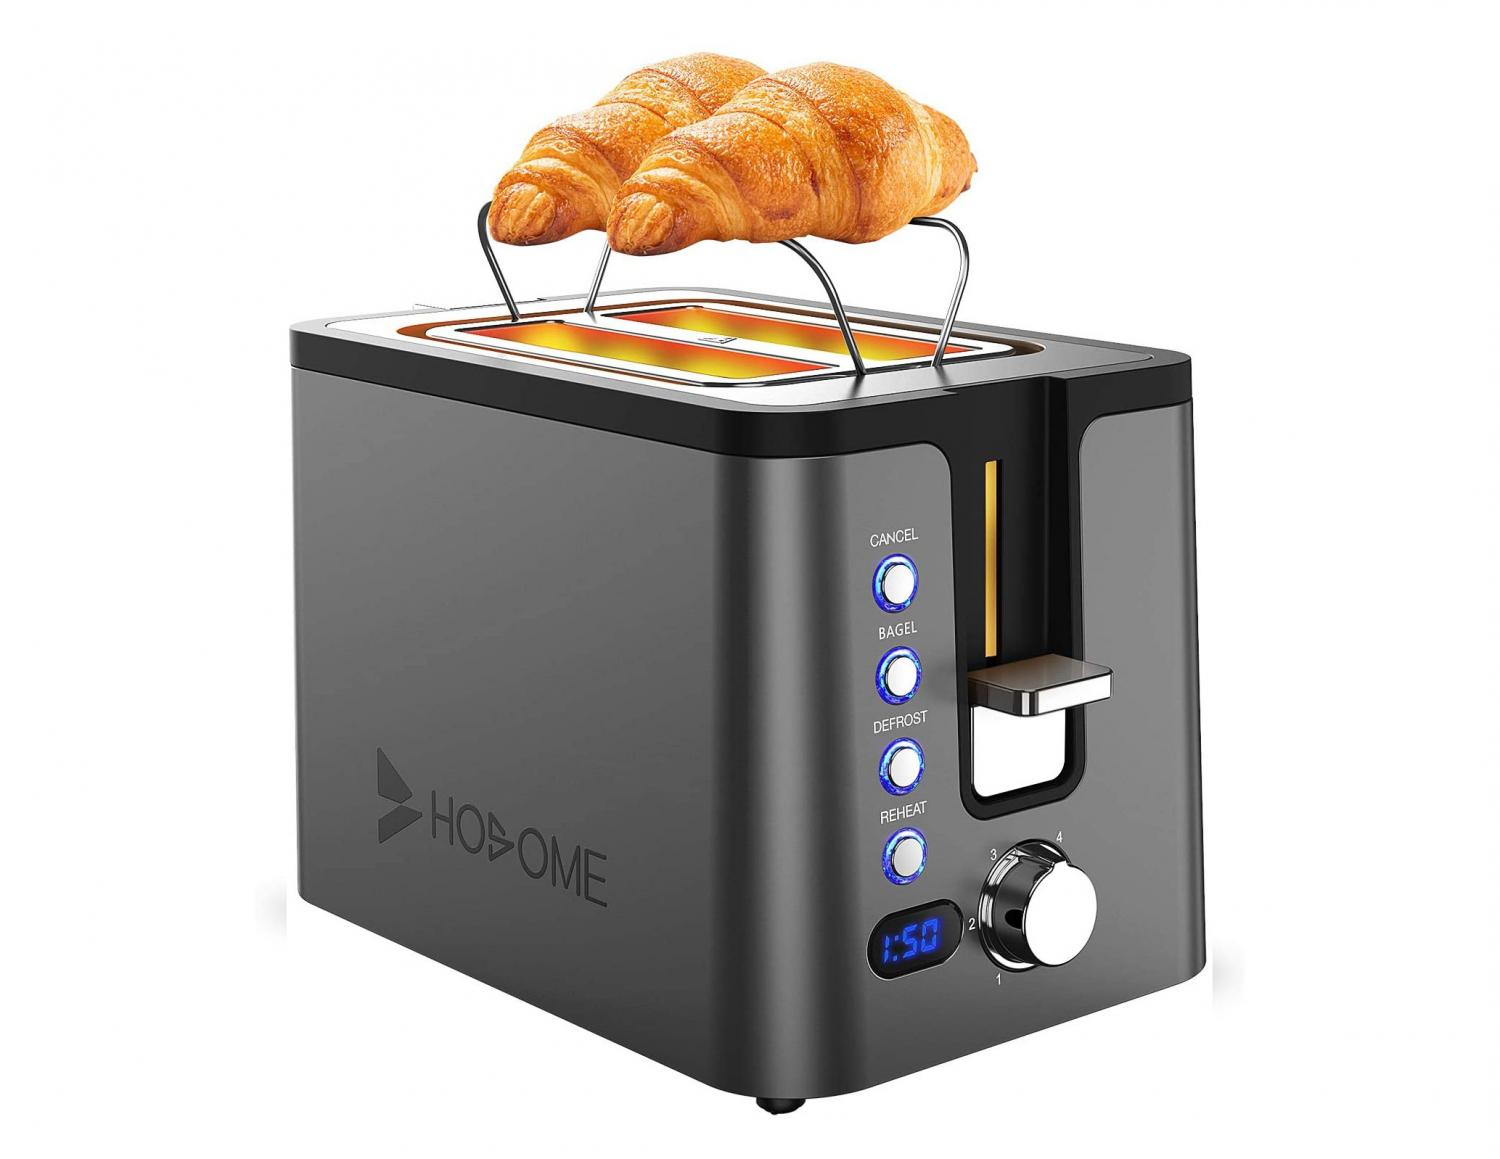 Toaster With Warming Rack - Pastry warming toaster